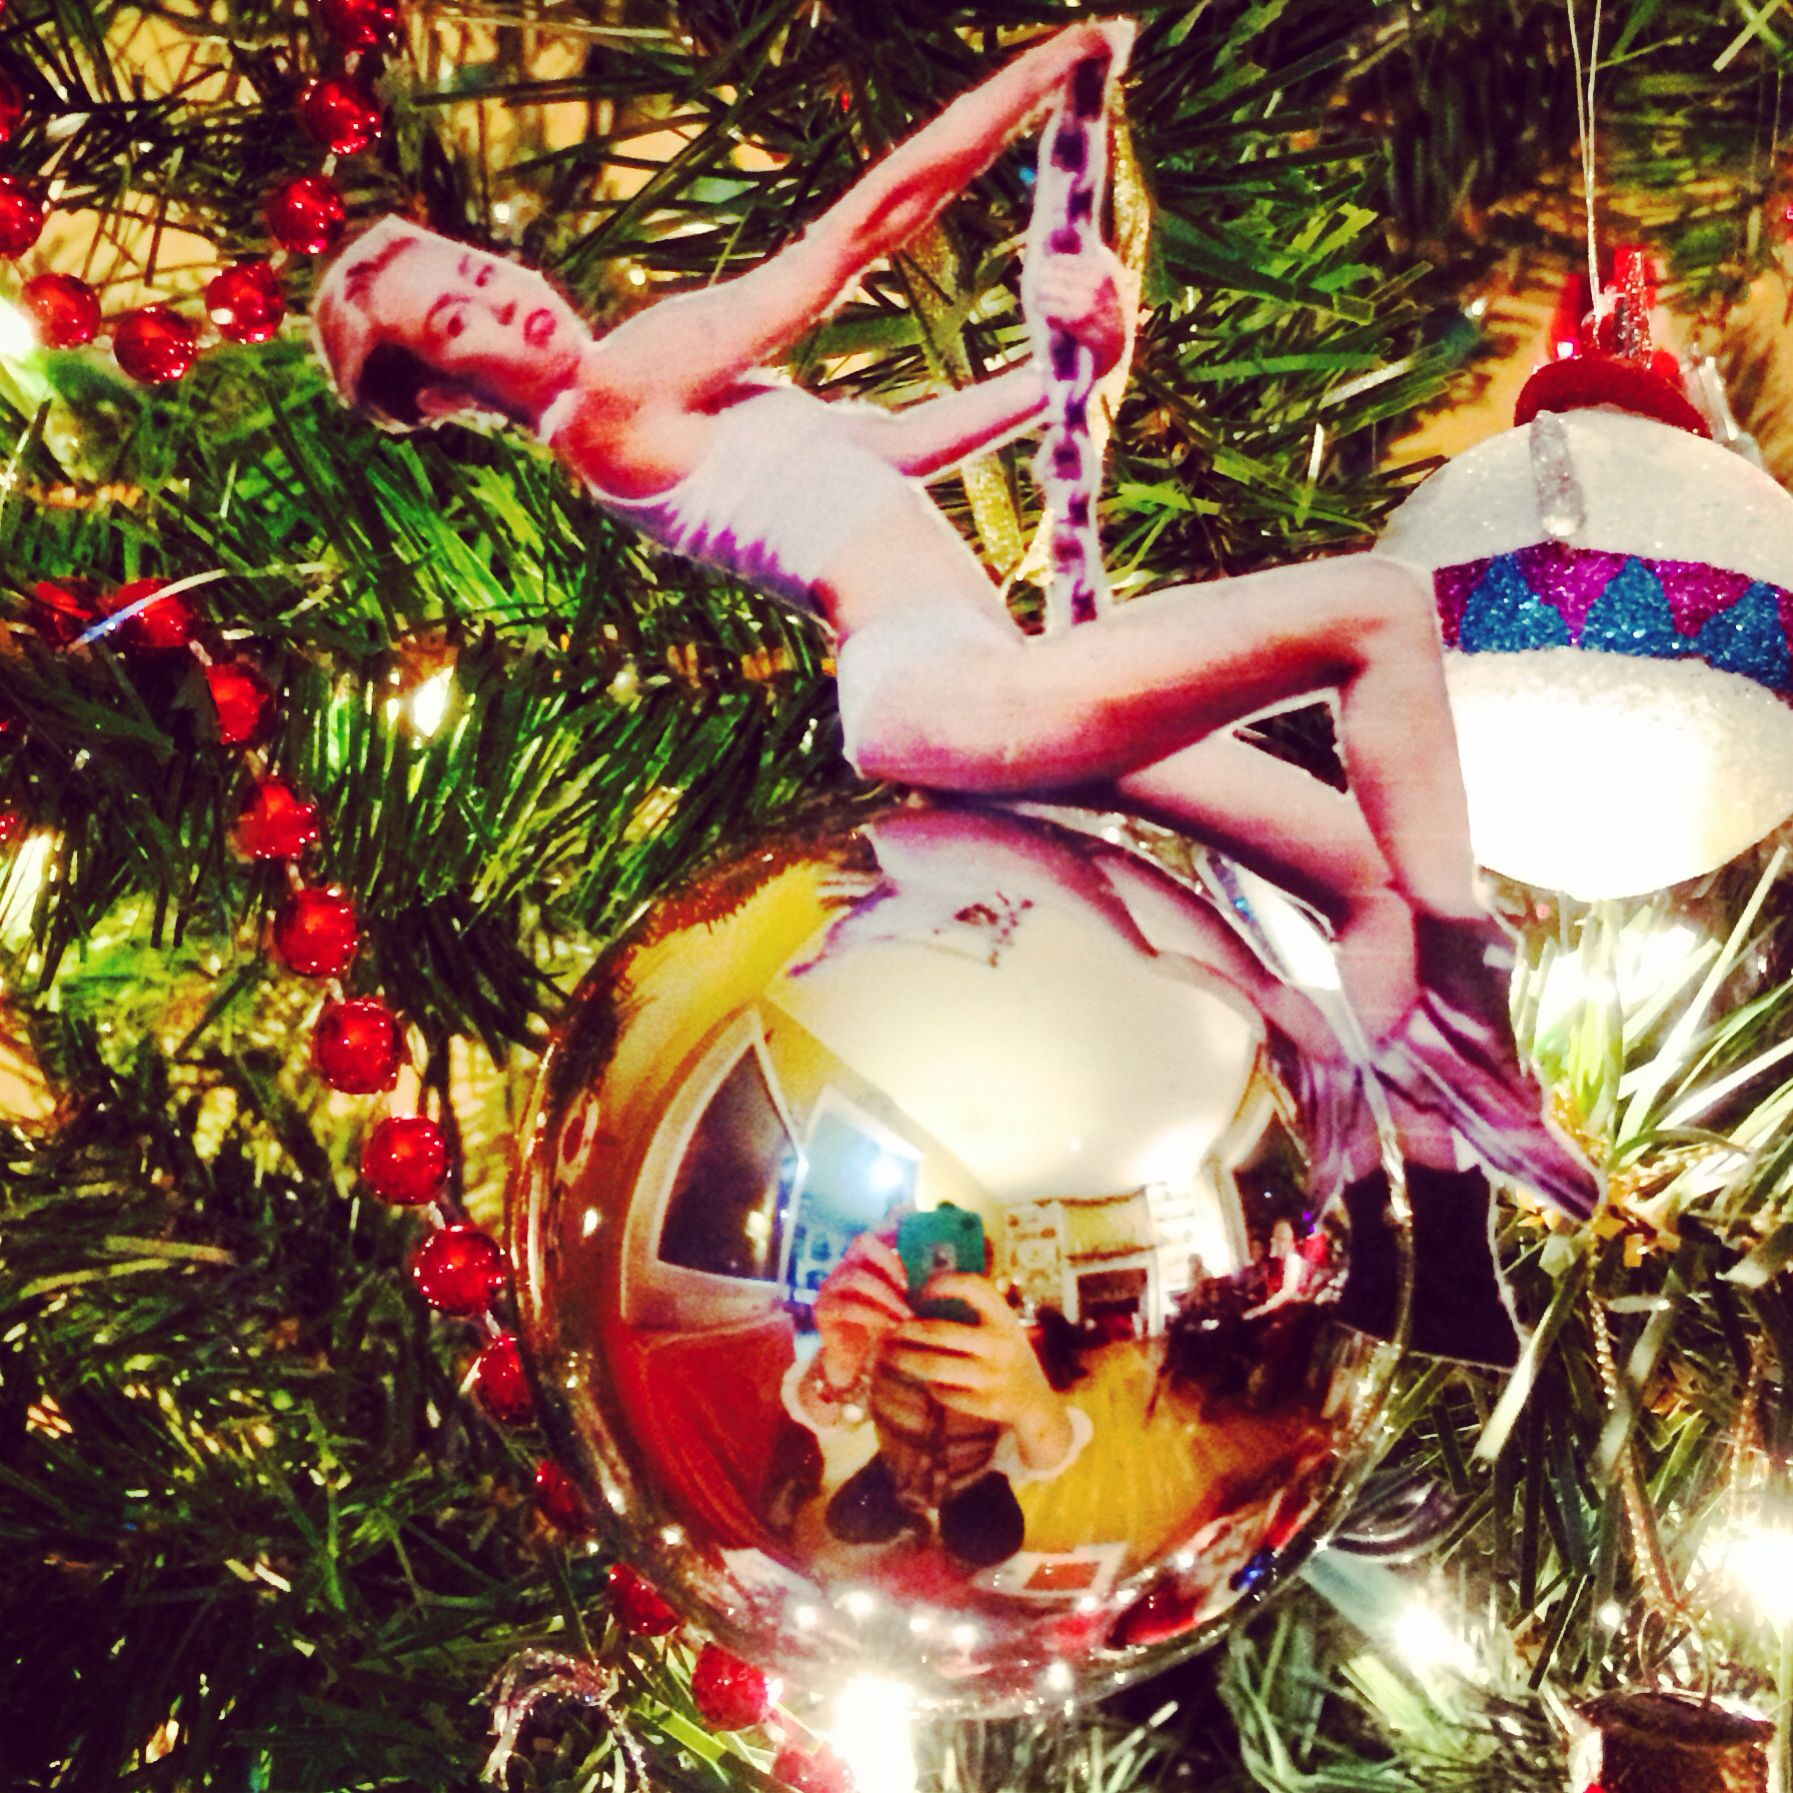 Miley Cyrus Wrecking Ball Christmas Ornament.My Sister Michelle Pietrocola Made The Most Amazing Mikey